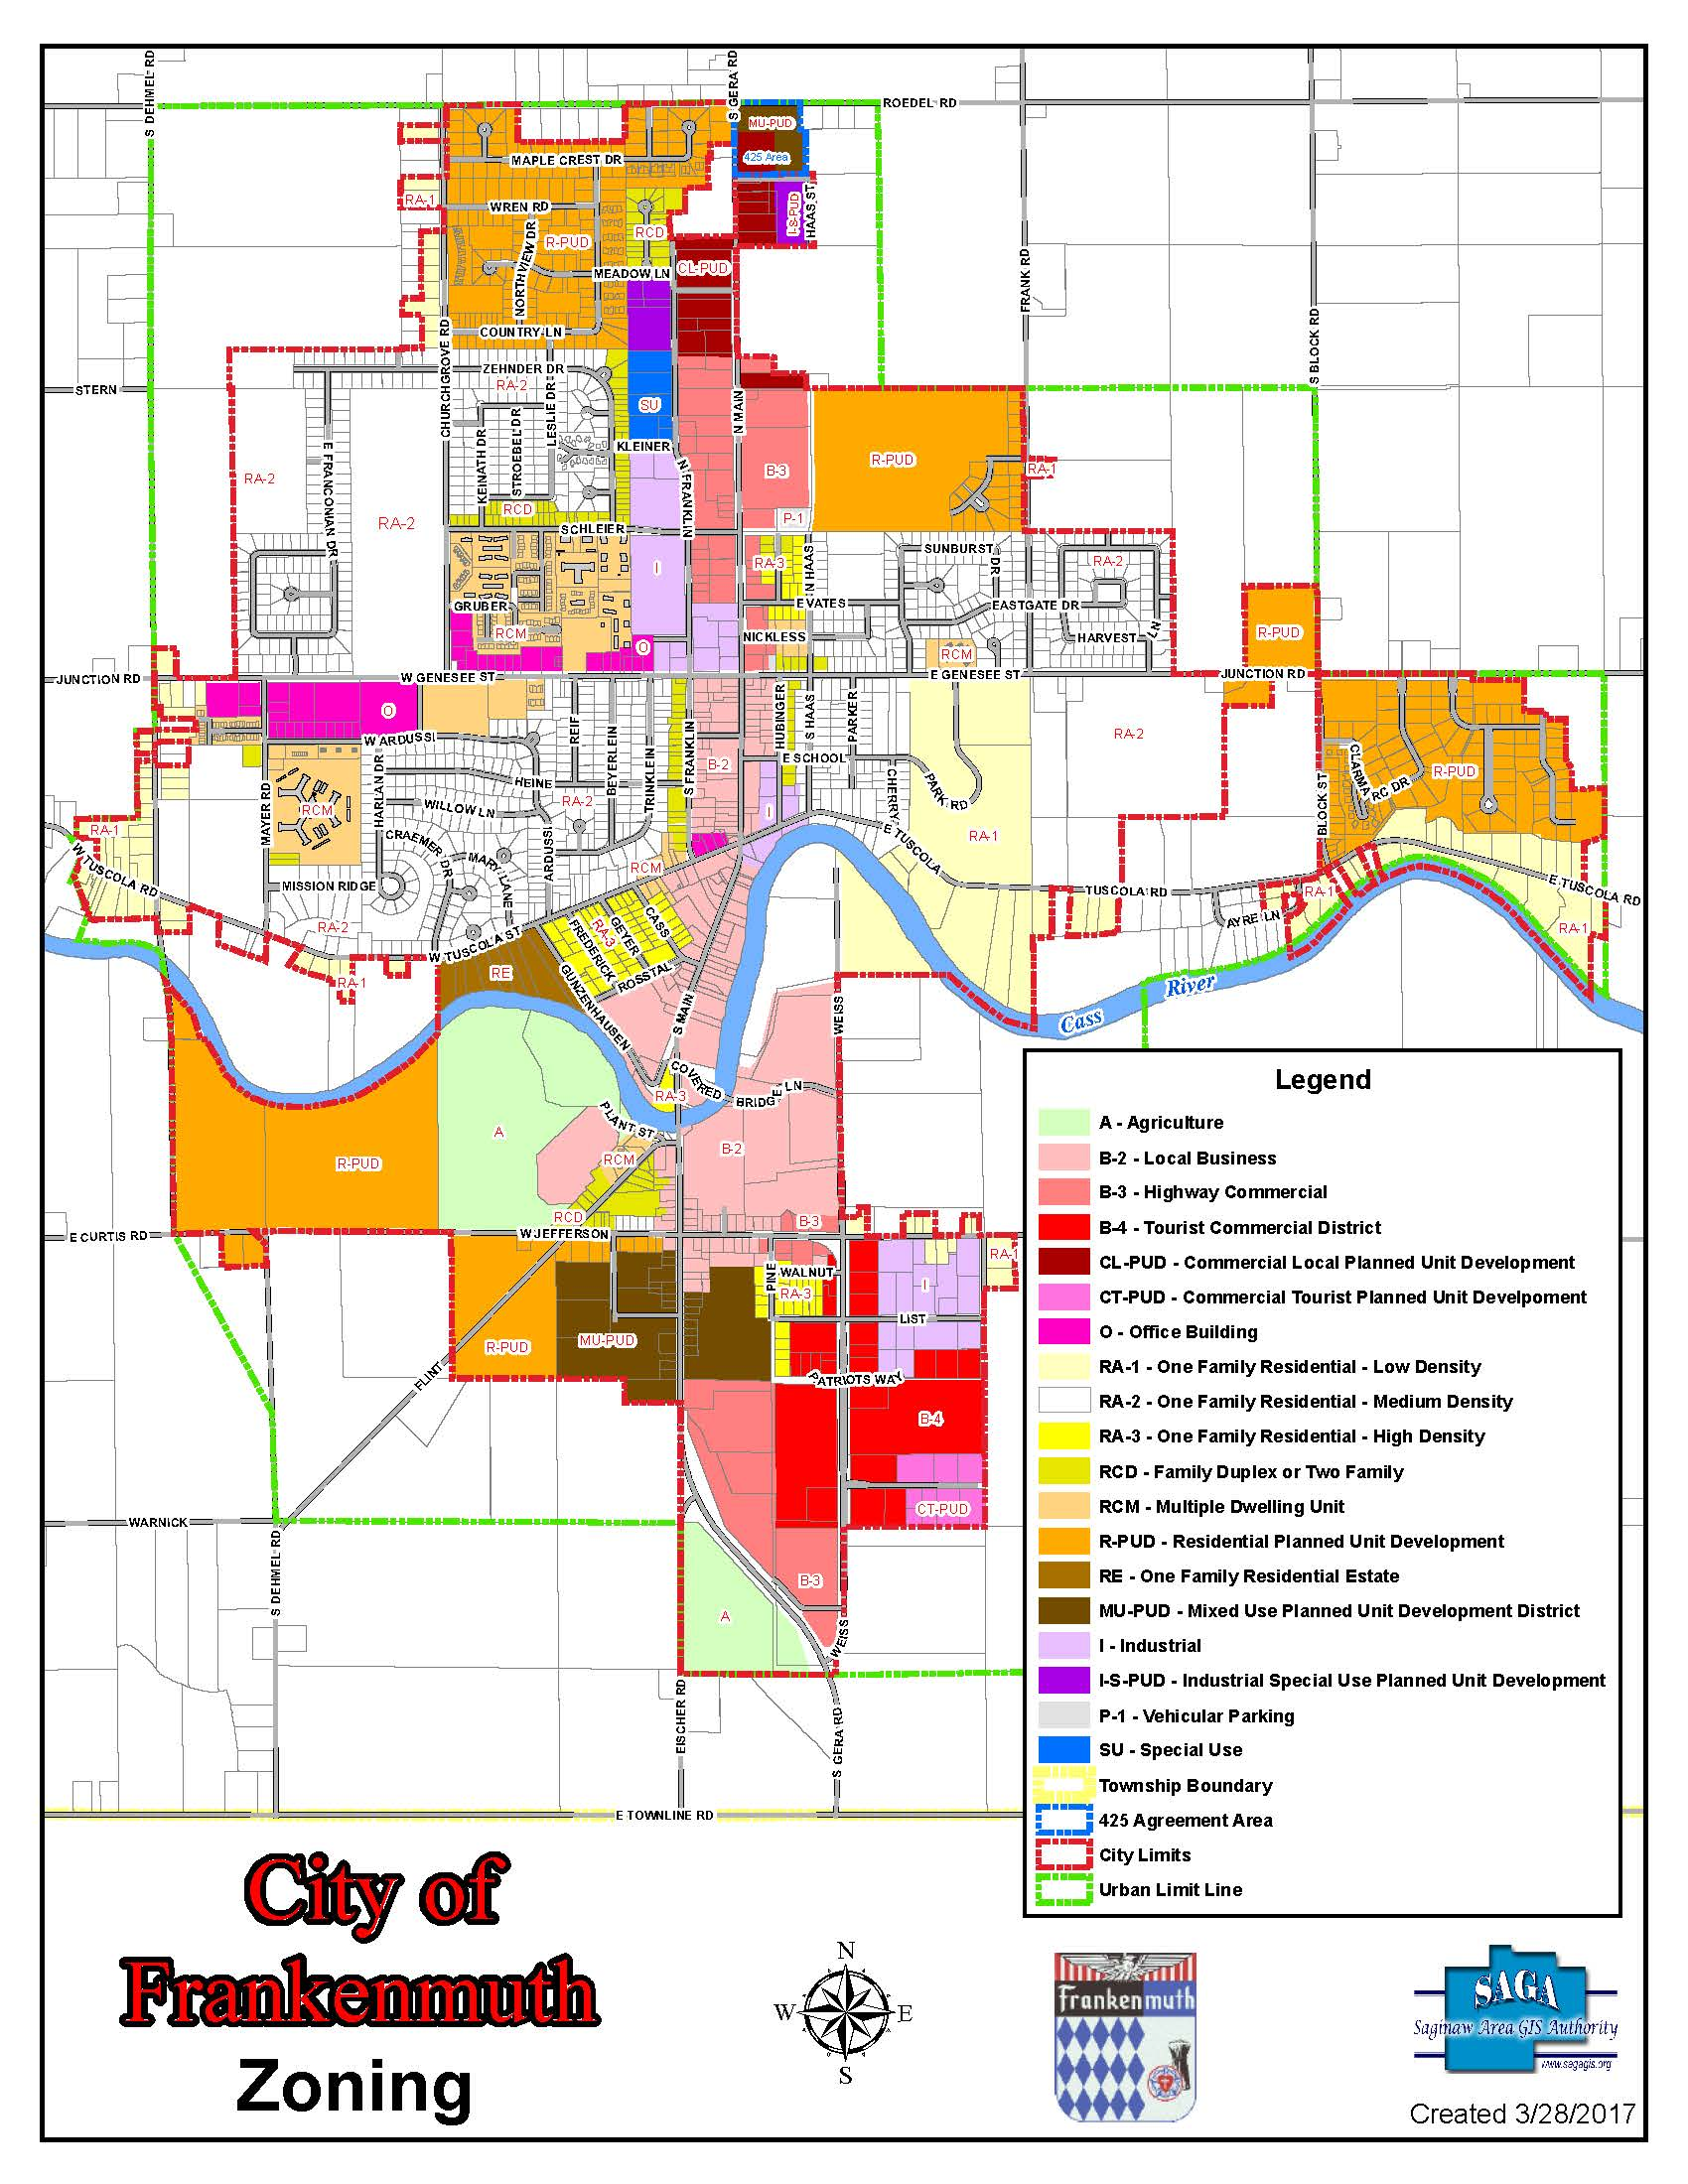 Frankenmuth City Zoning Map